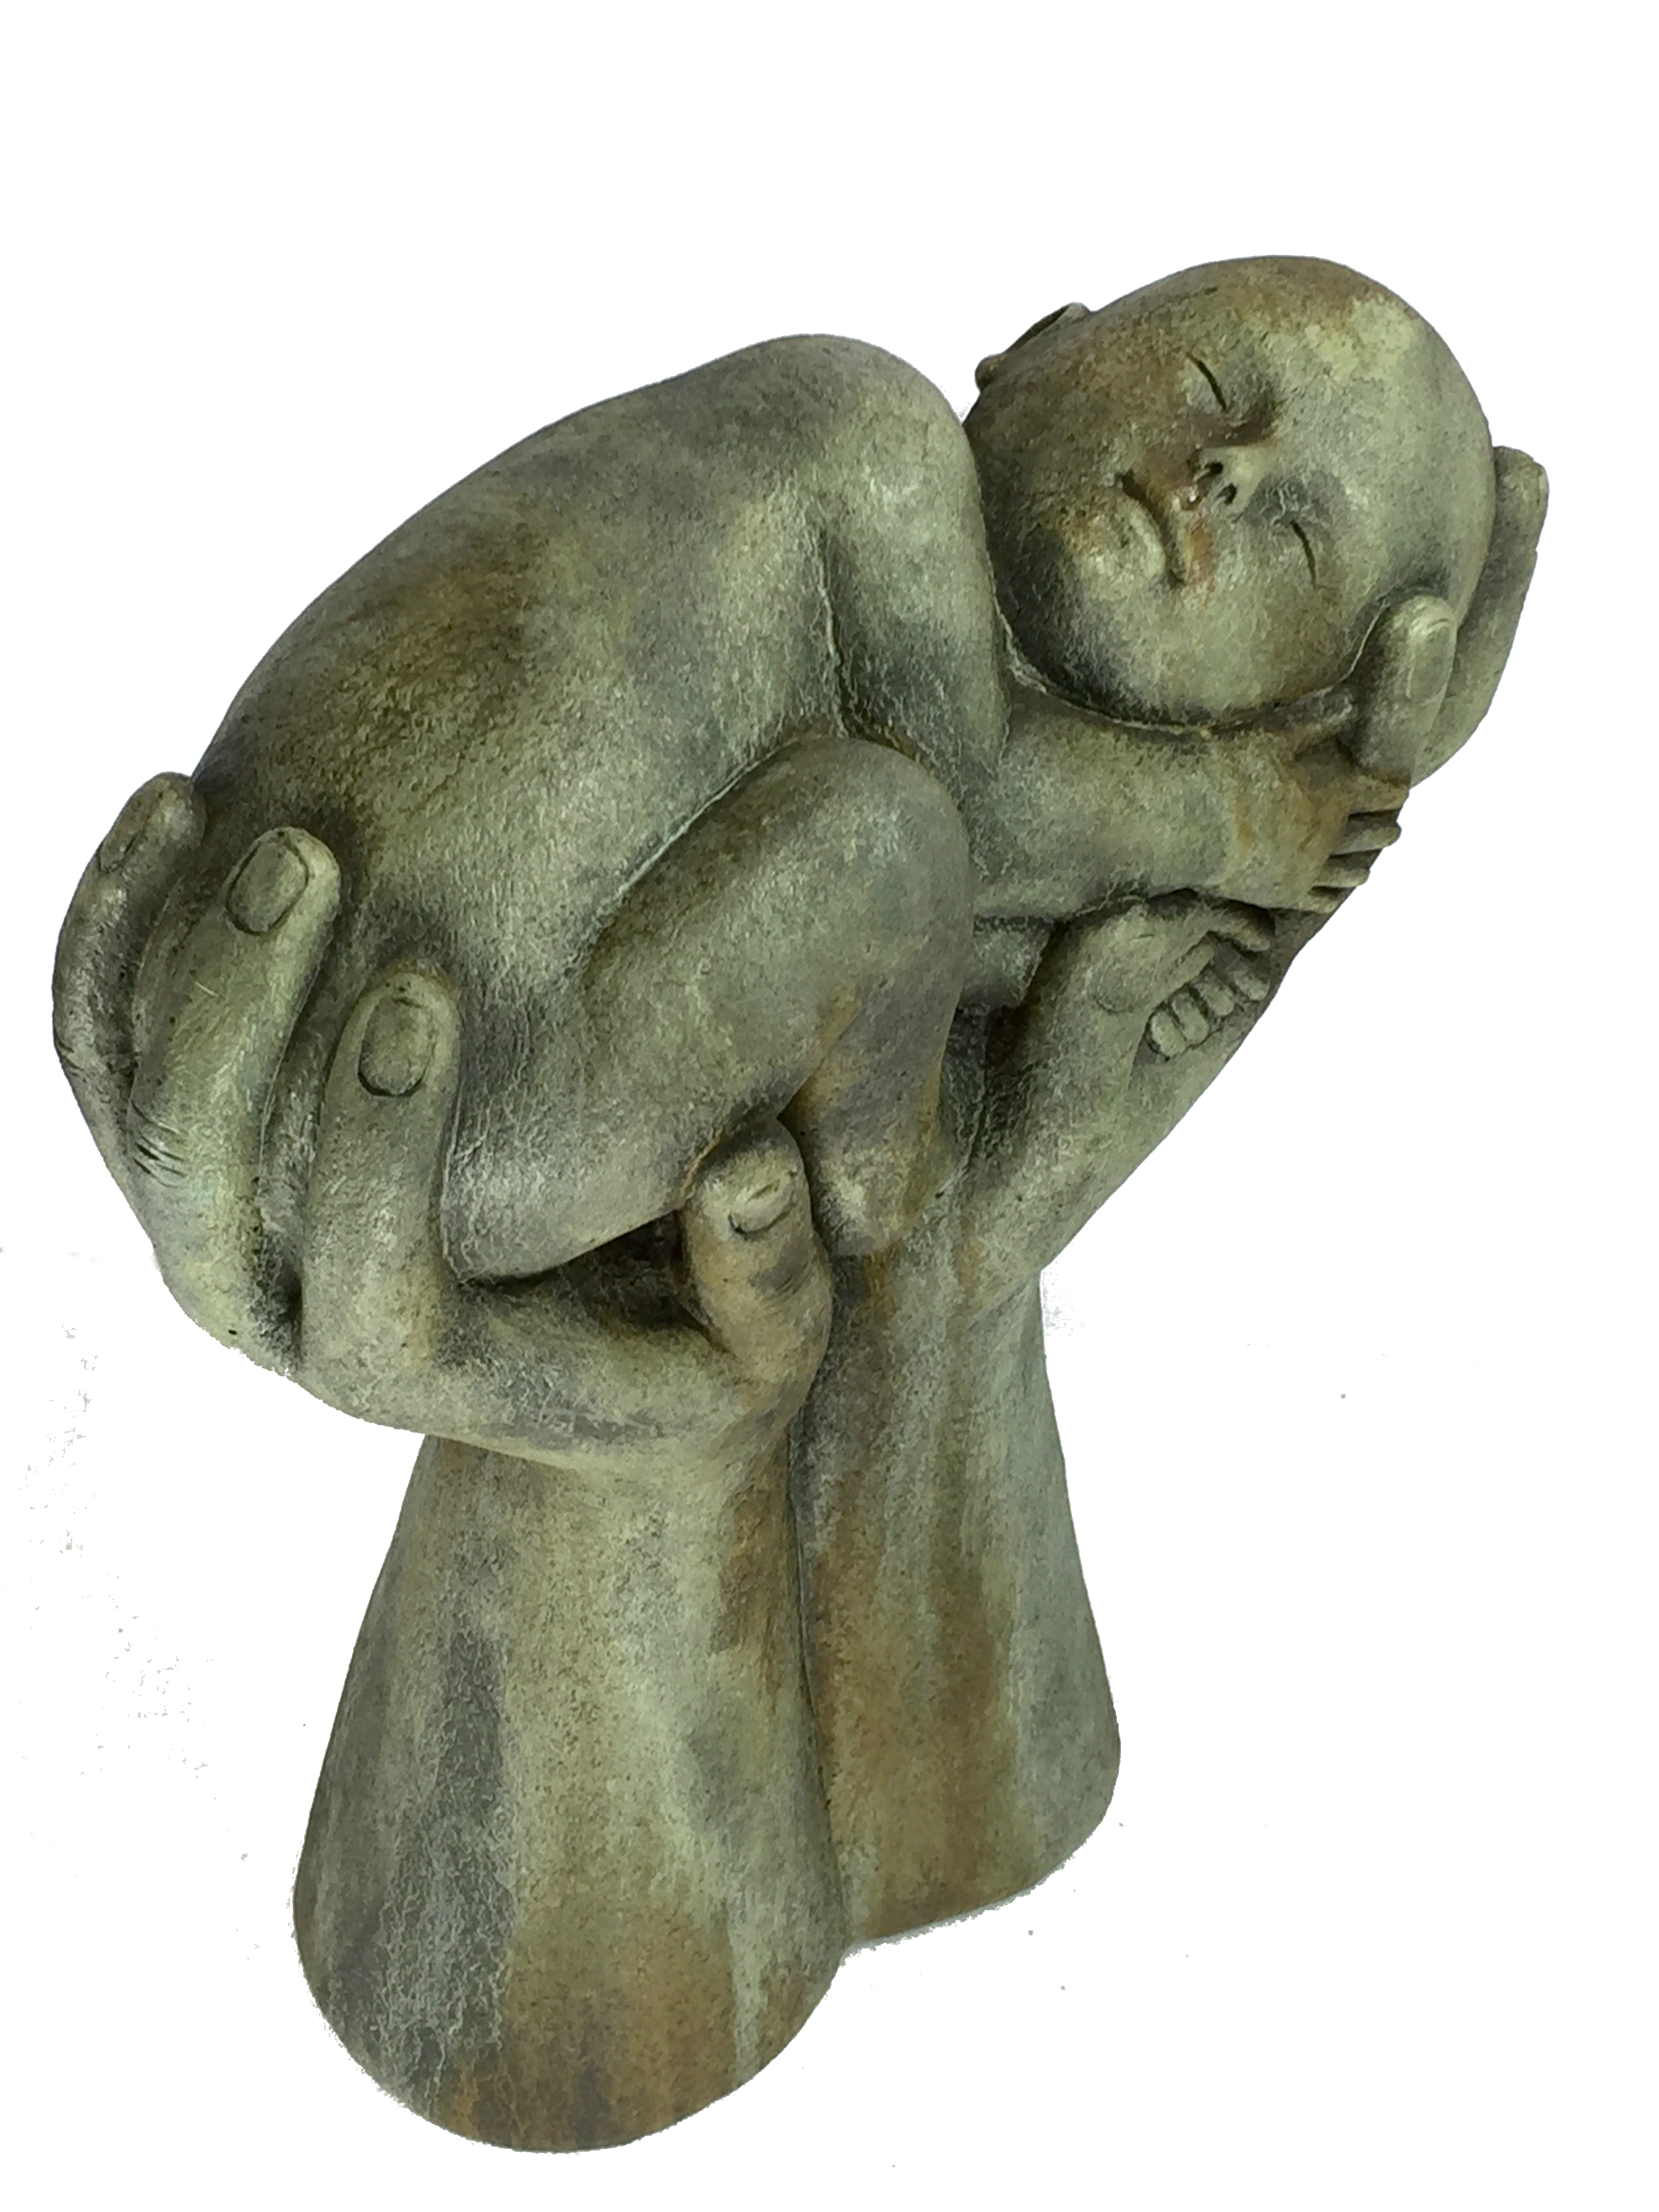 Nature's Infant, concrete statue of baby in hands fr yard